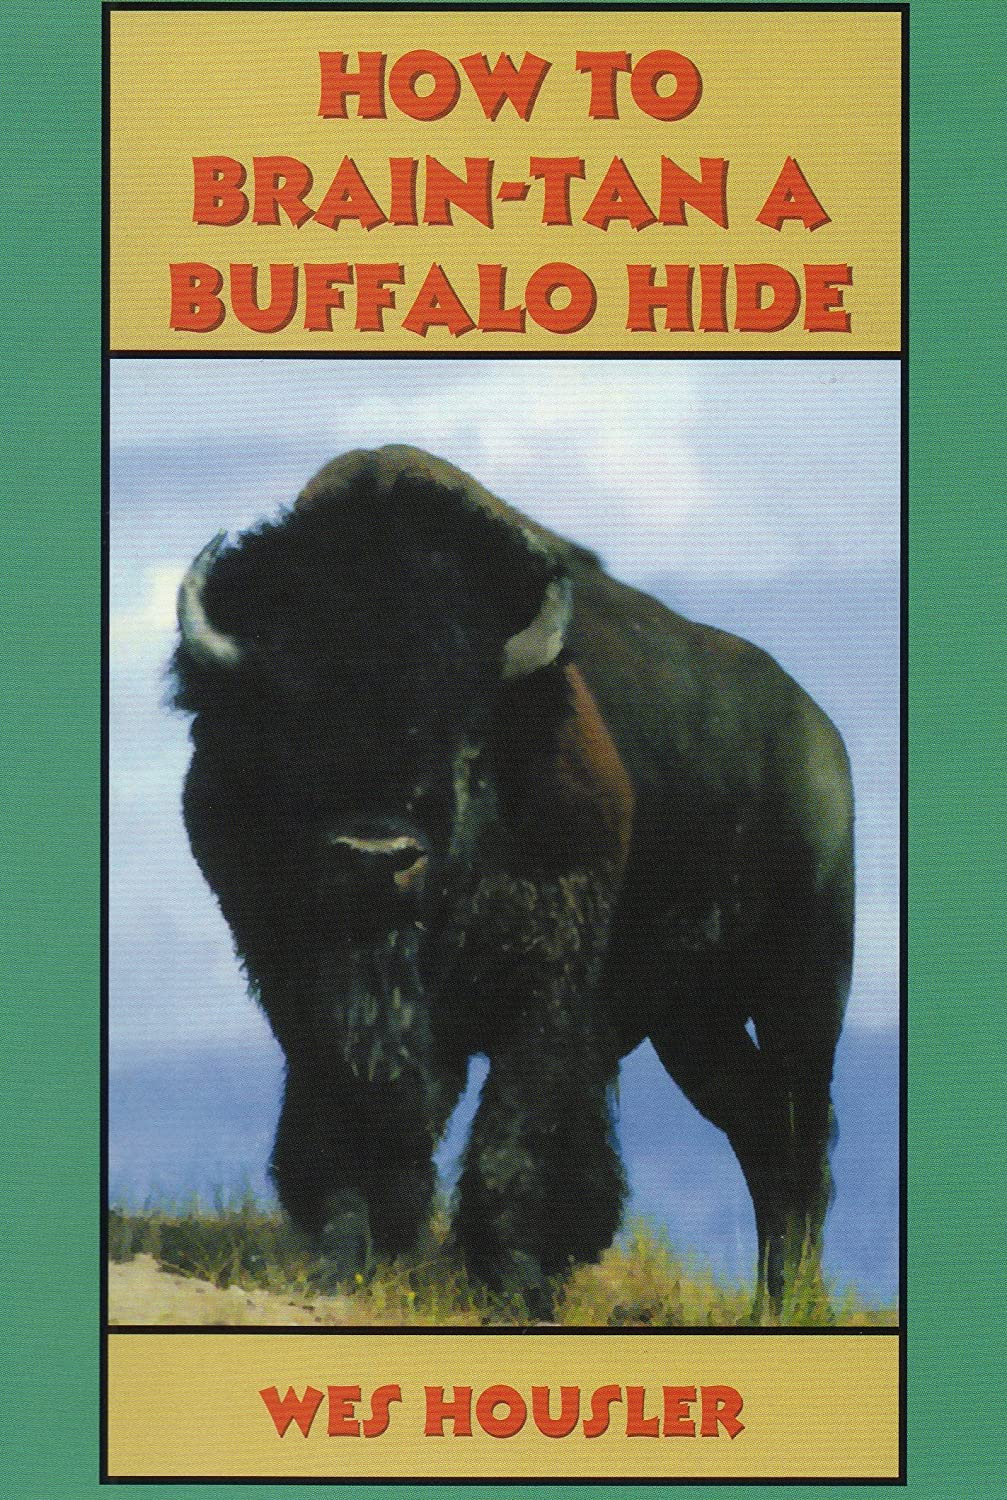 Image for How to Brain-Tan a Buffalo Hide by Wes Housler